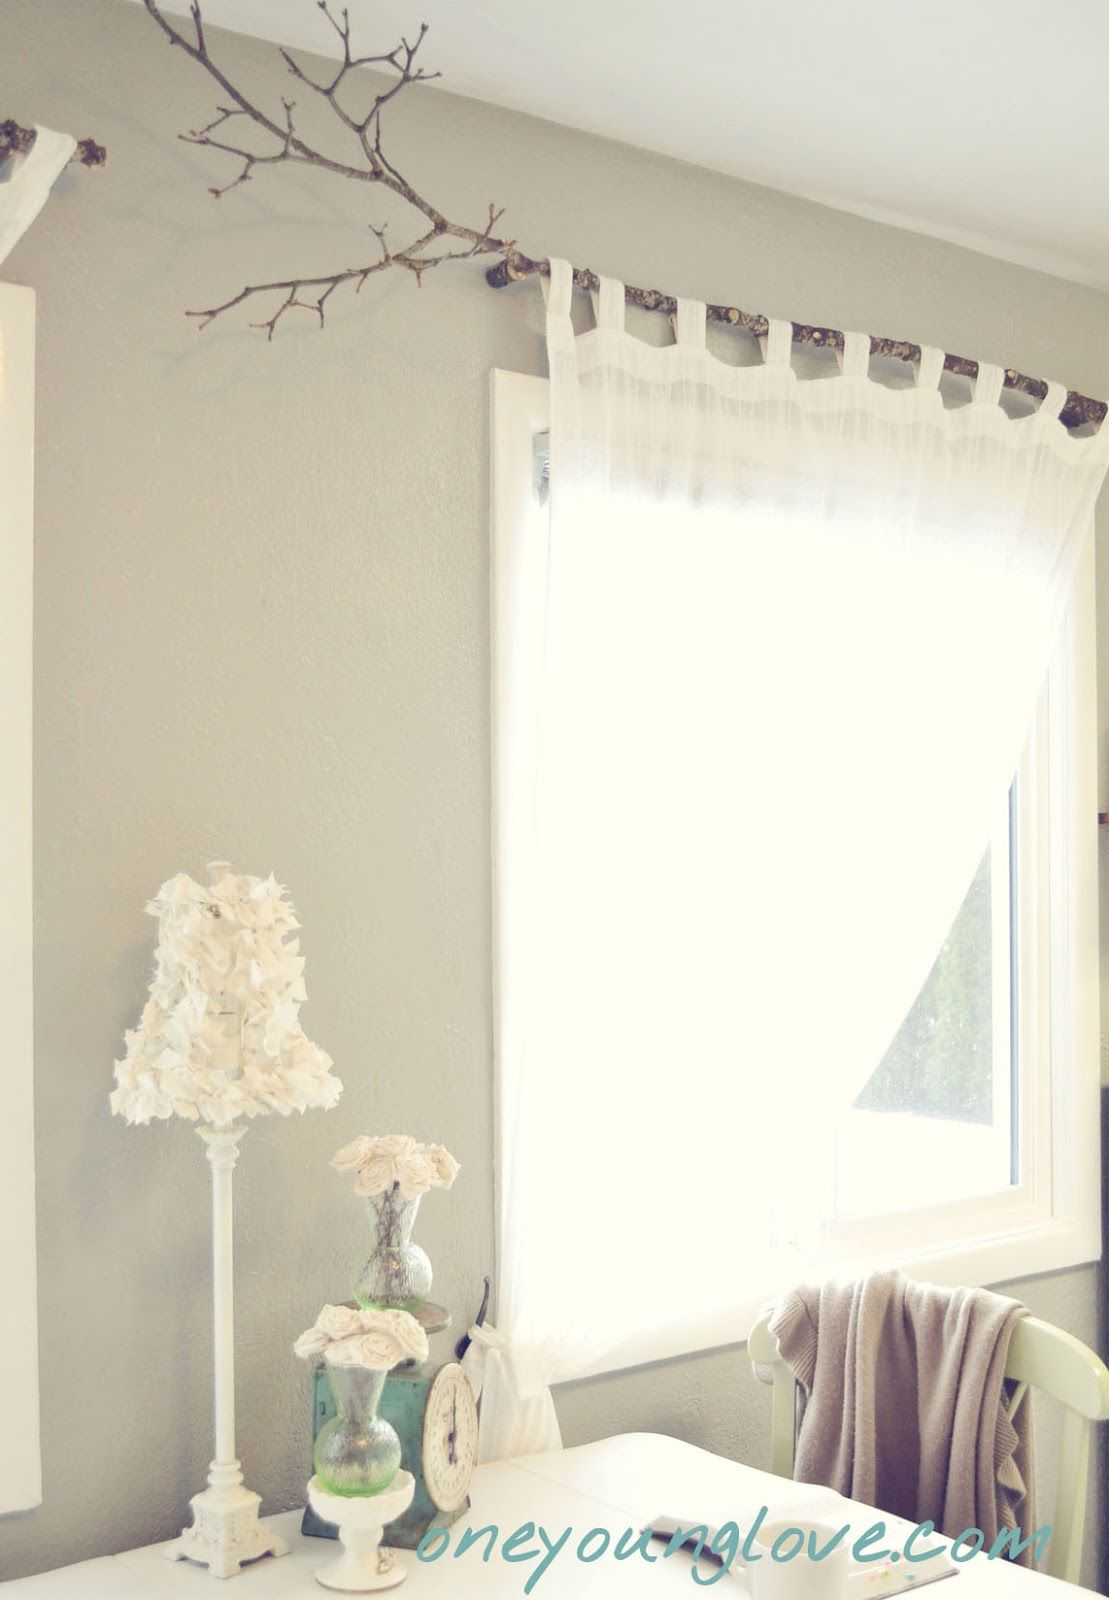 Decorating theme bedrooms maries manor window treatments curtains - Best 25 Natural Curtain Poles Ideas Only On Pinterest Diy Curtain Poles Natural Curtains For The Home And Easy Window Treatments